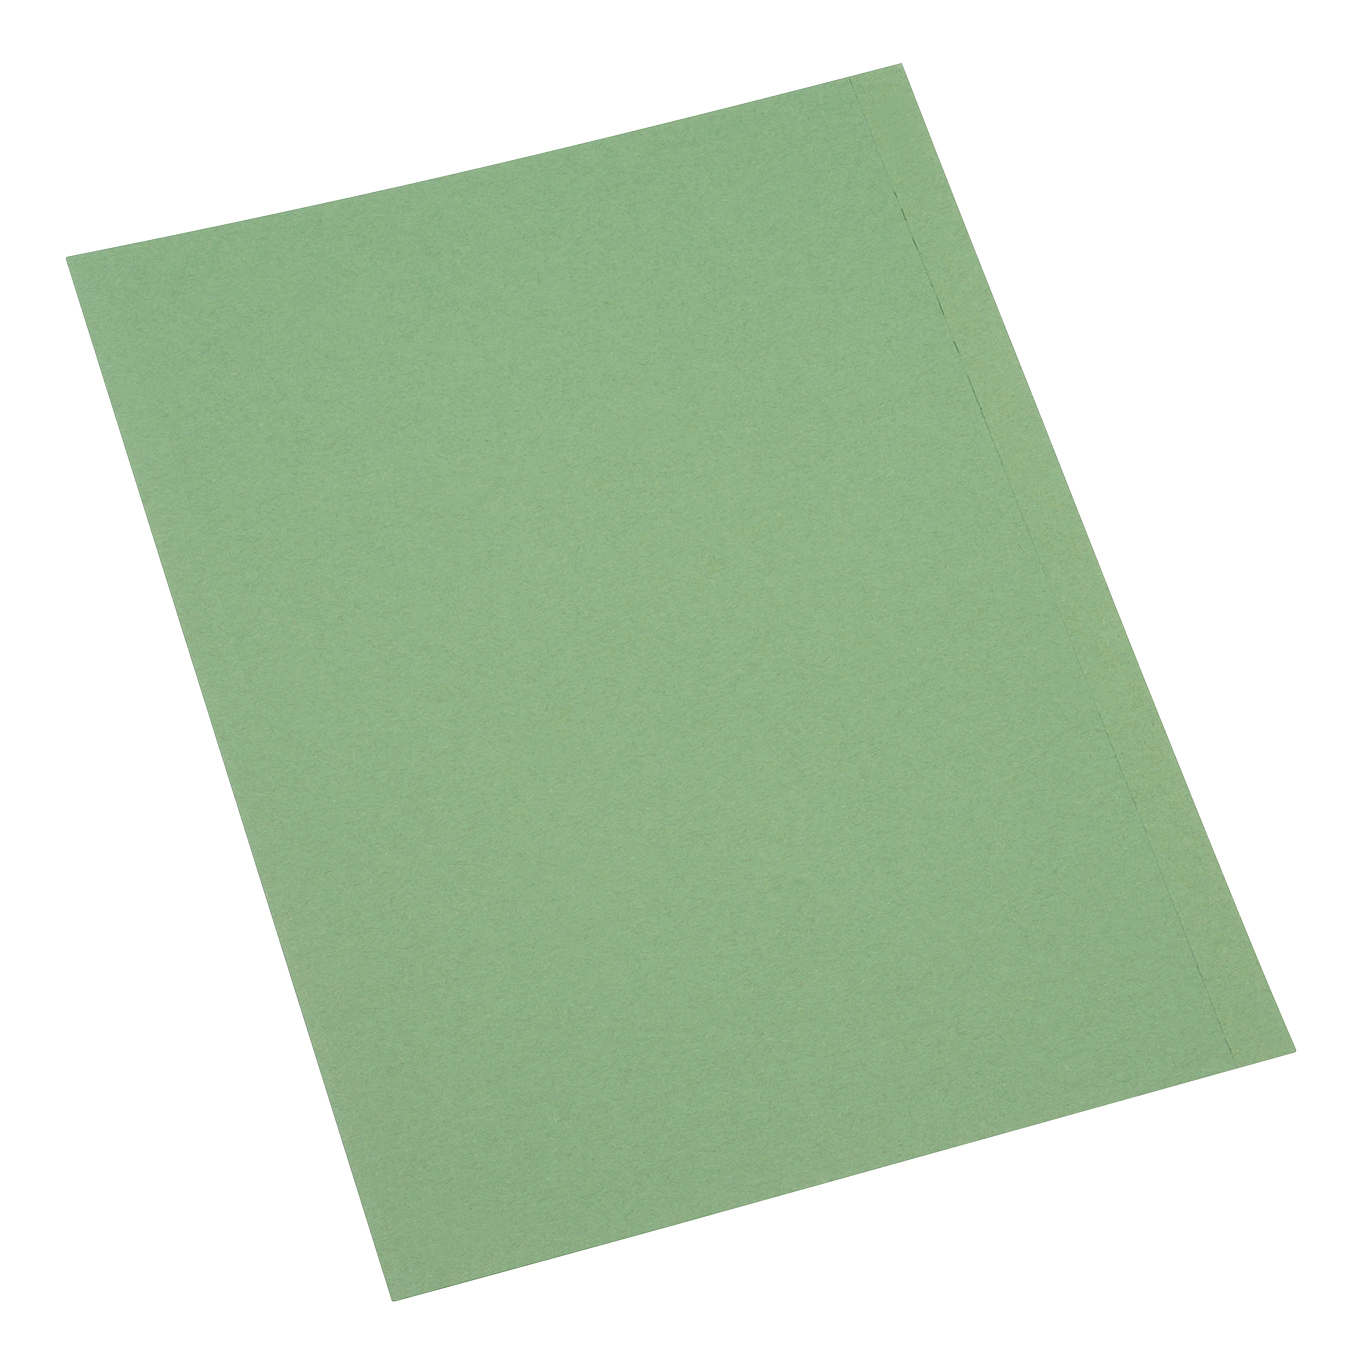 Square Cut Folders 5 Star Office Square Cut Folder Recycled 250gsm A4 Green Pack 100